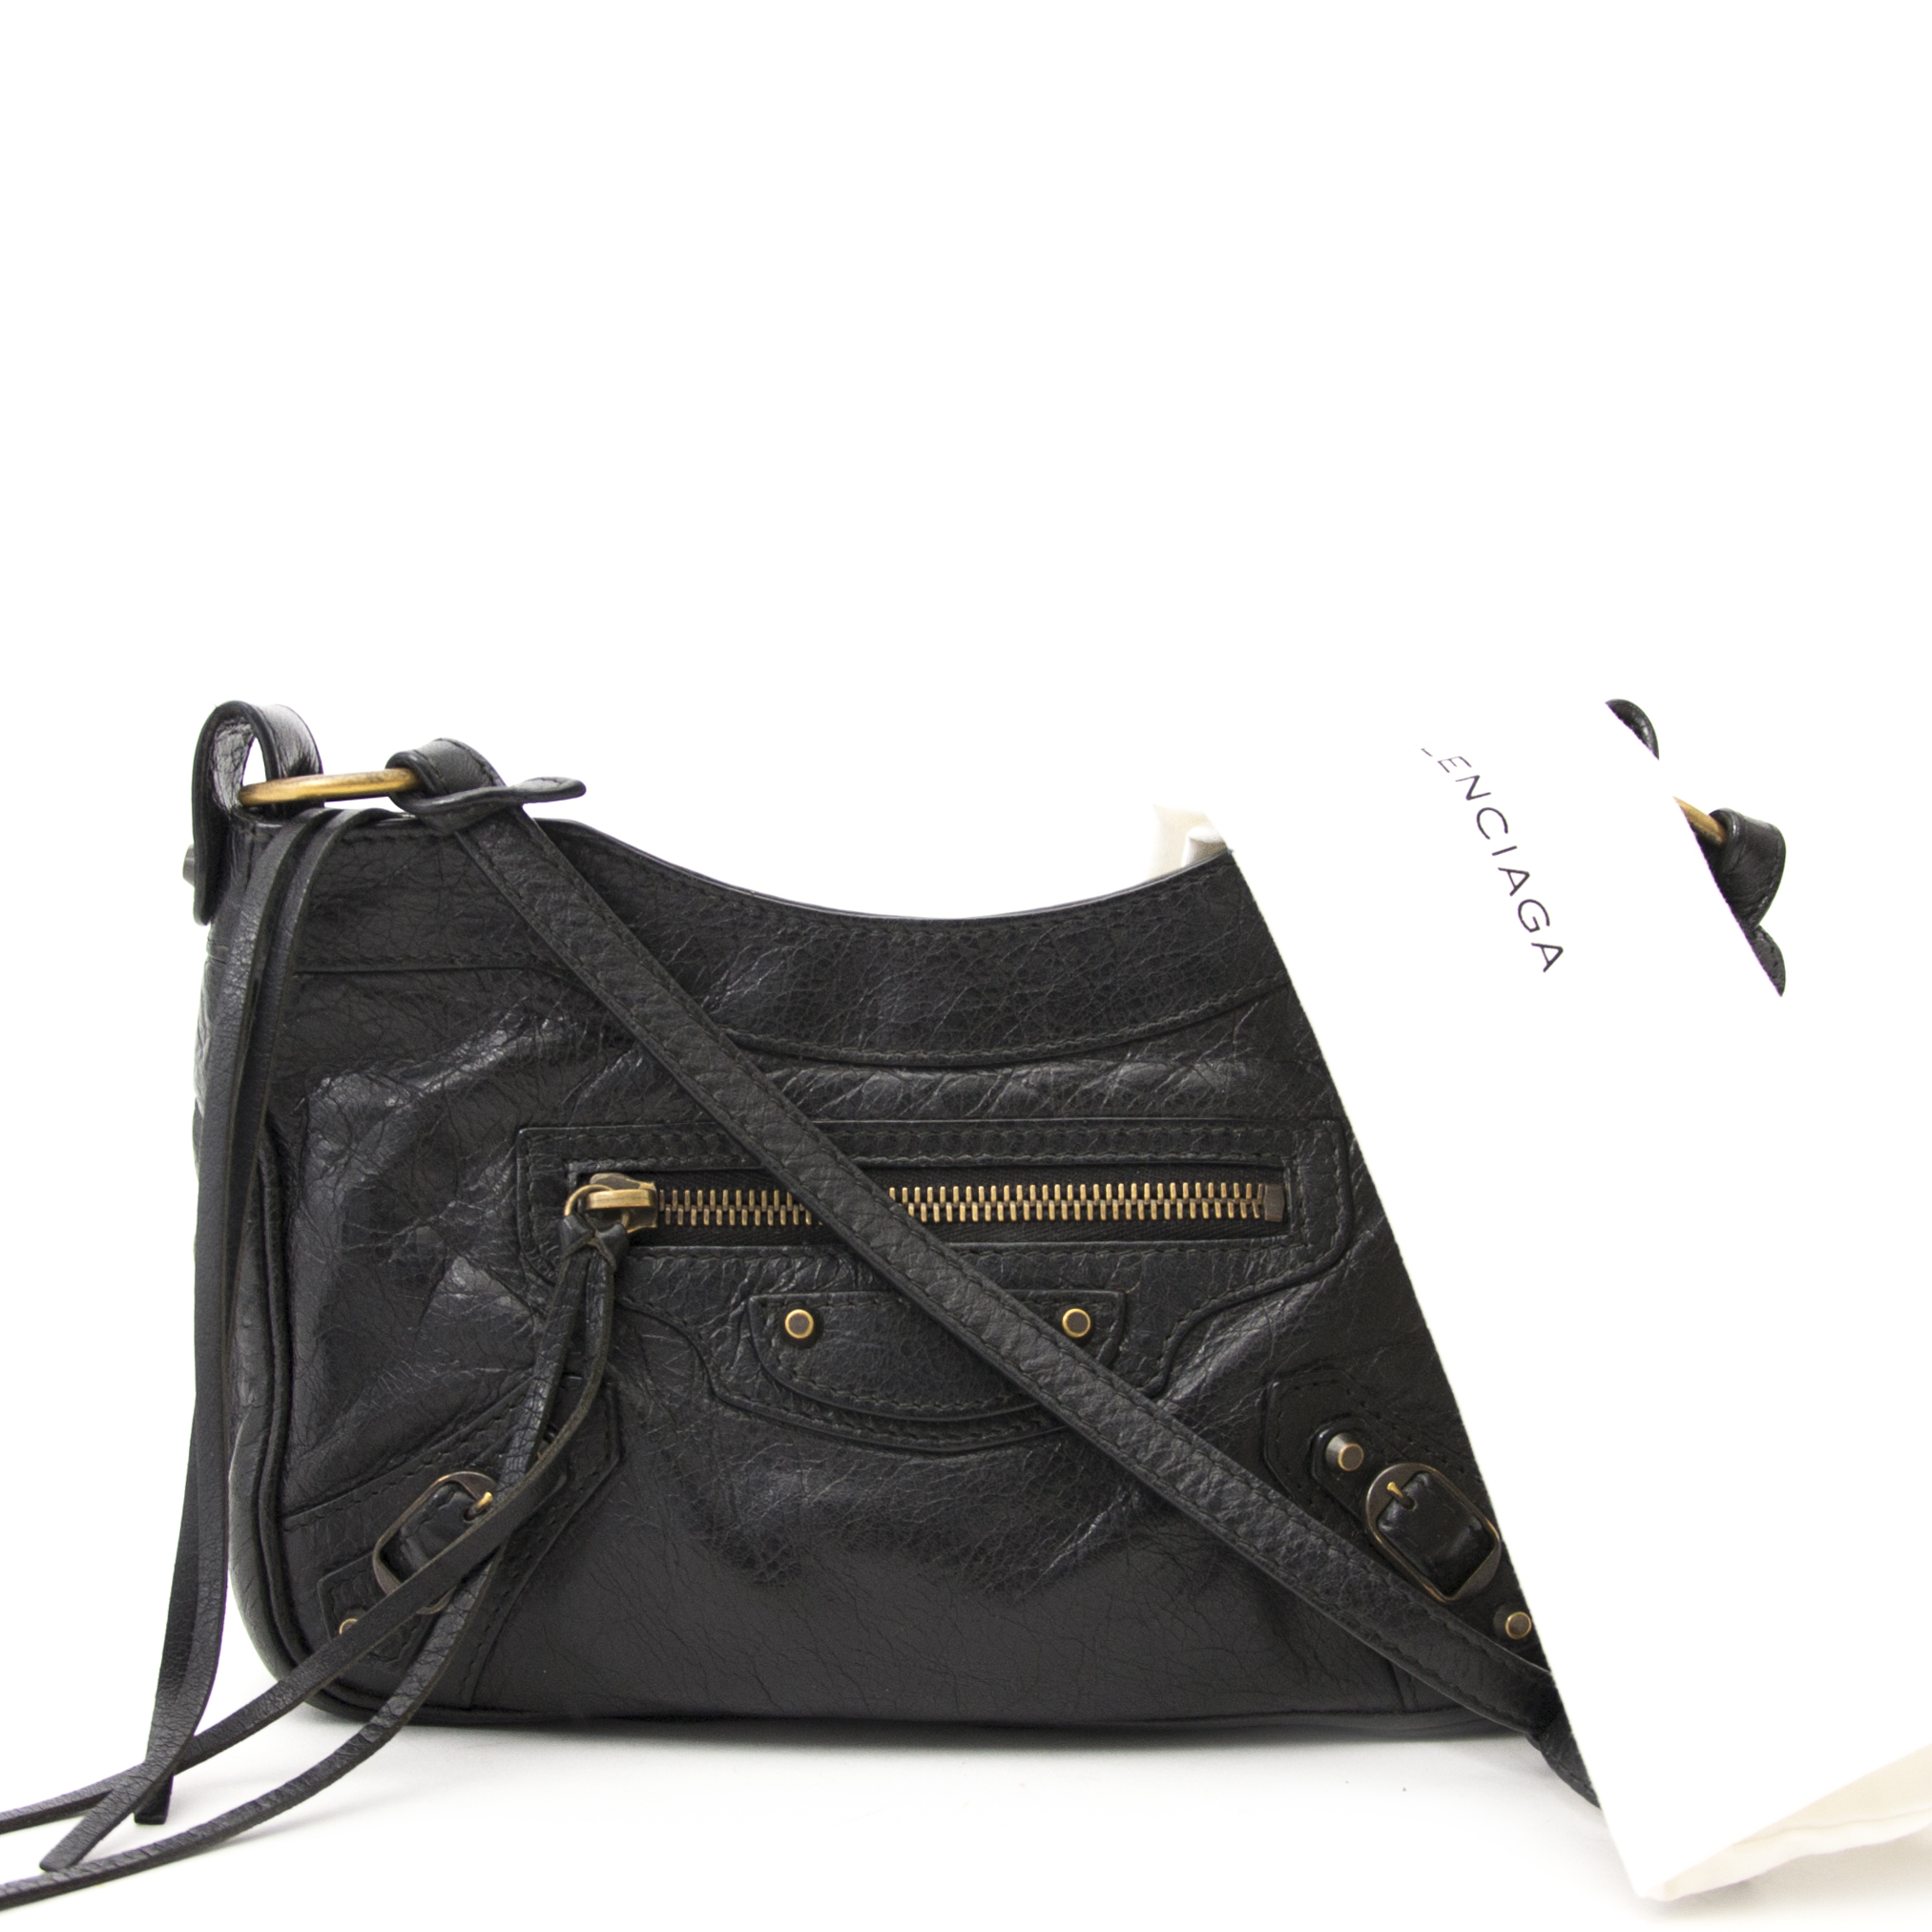 2864626afc Labellov Balenciaga Classic Gold Hip Bag ○ Buy and Sell Authentic ...